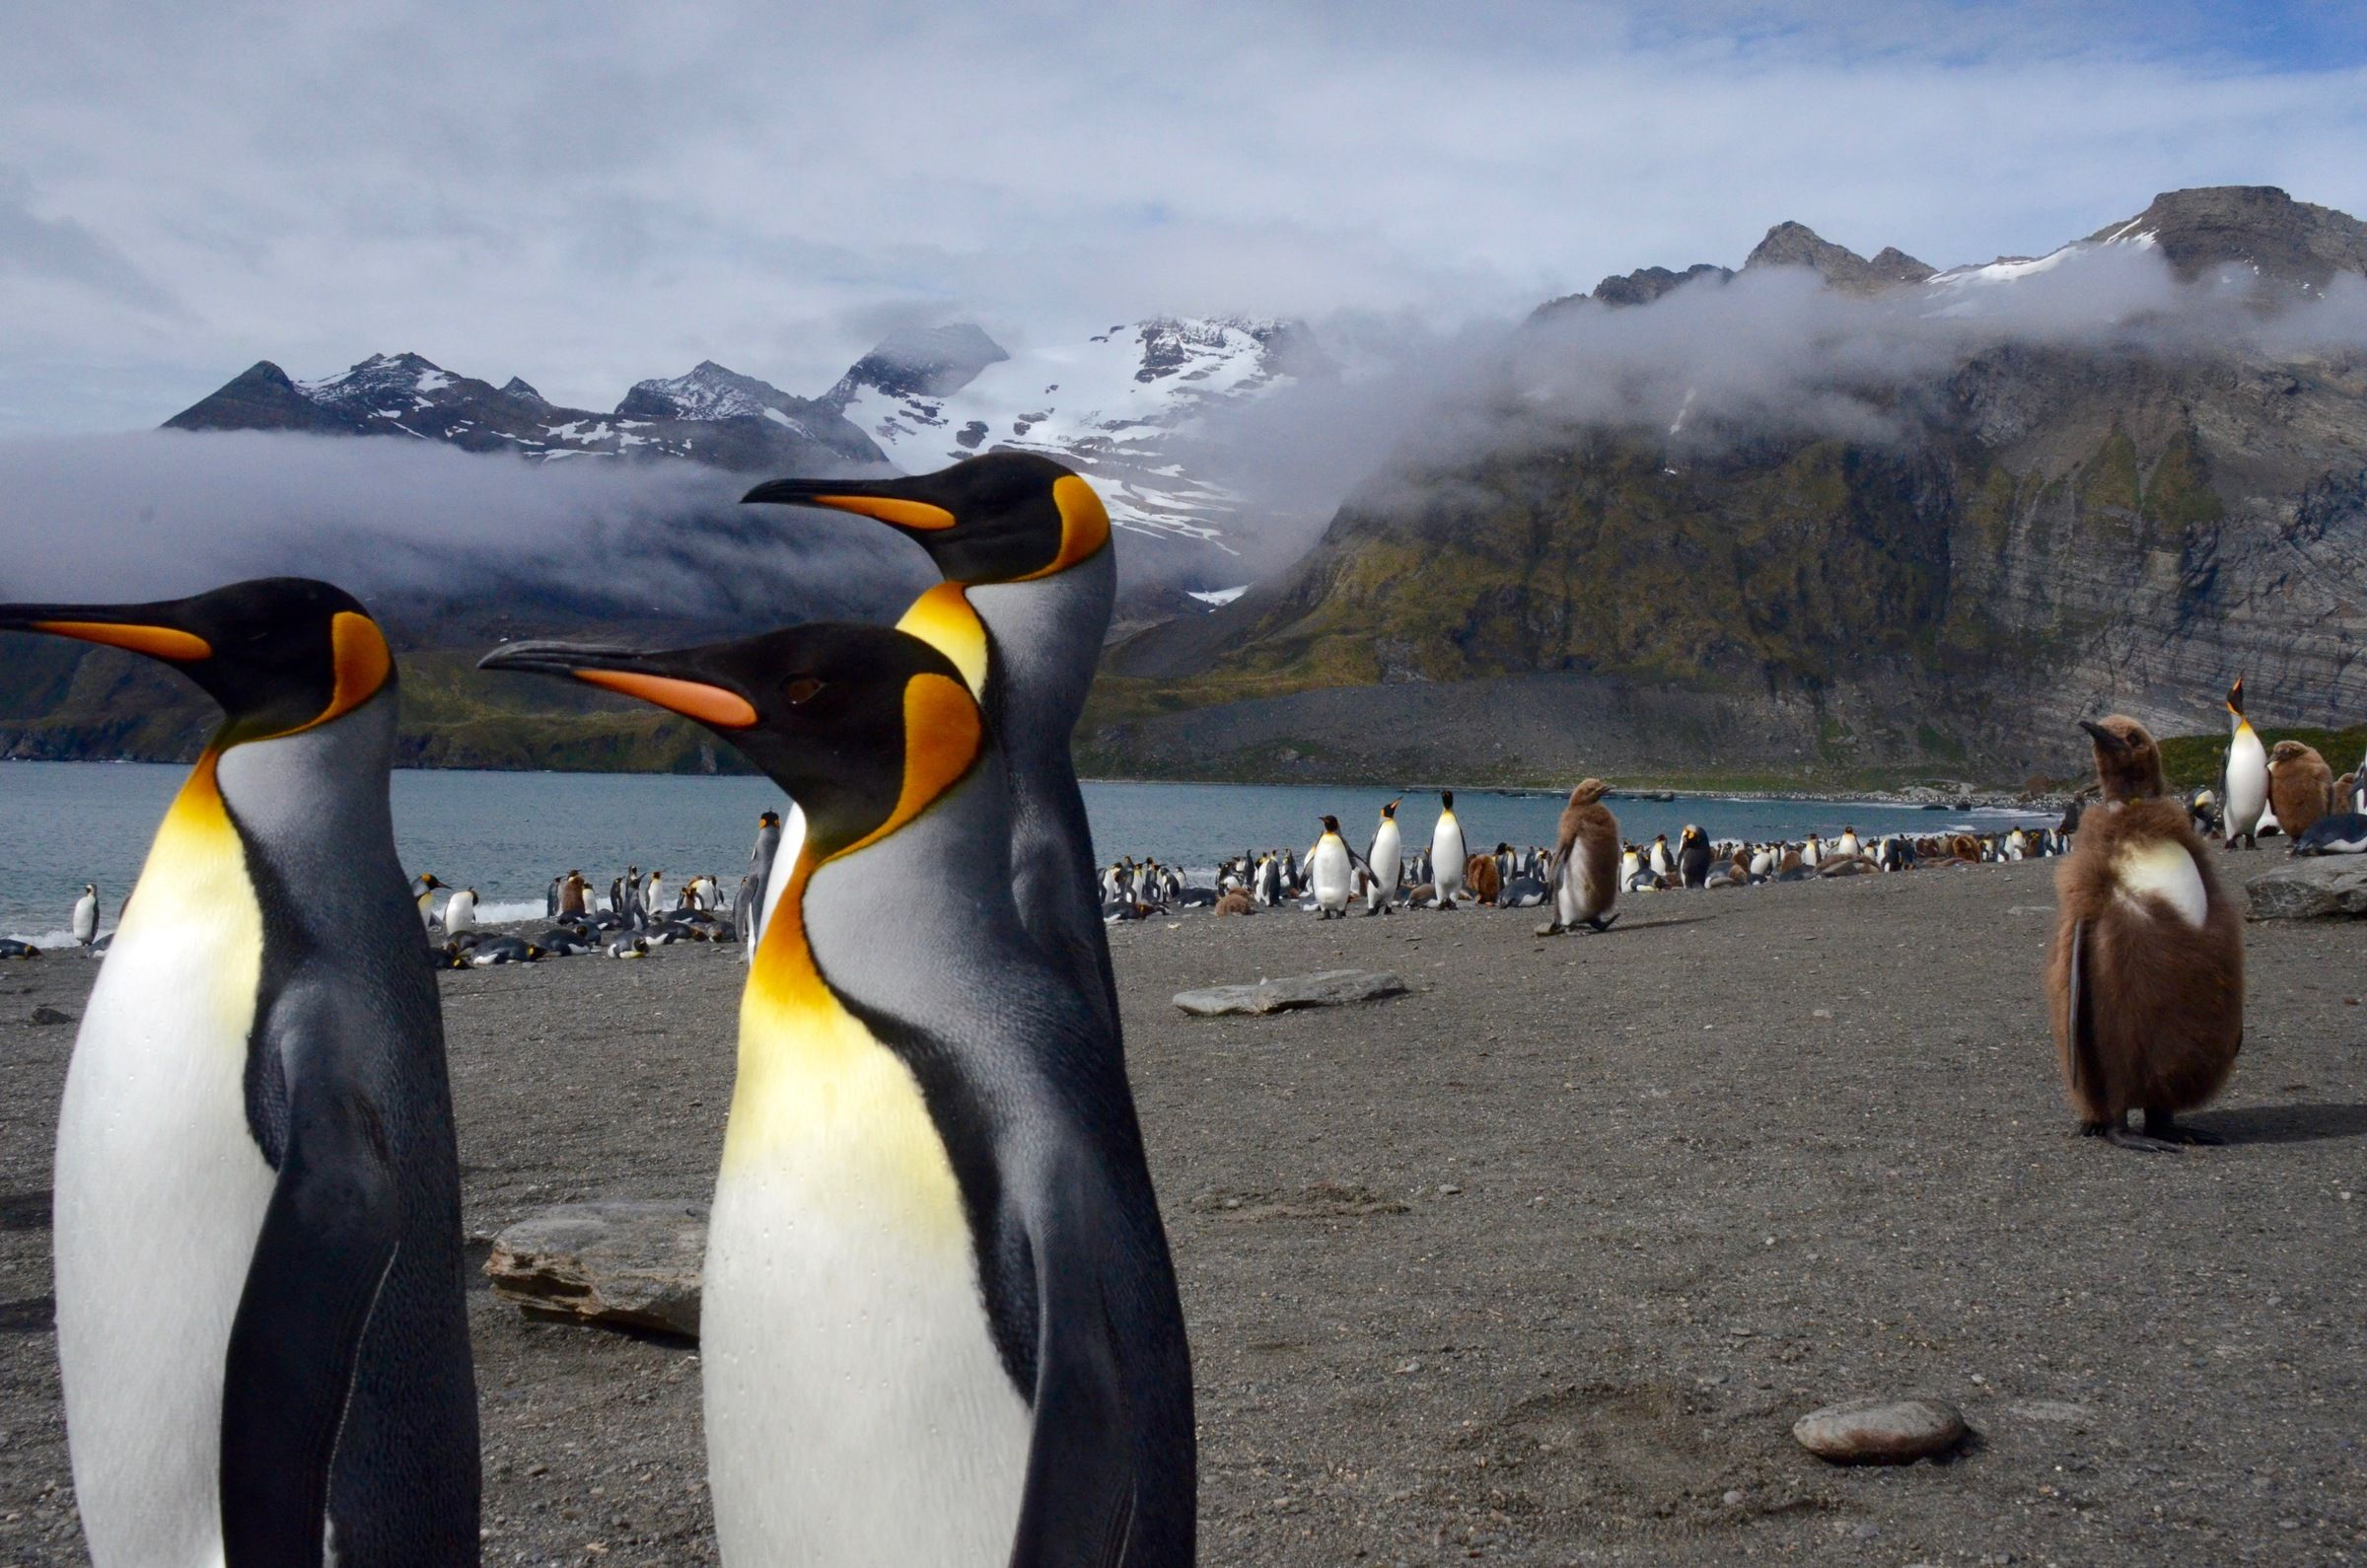 Students Will Research Recent Statistics On Endangered